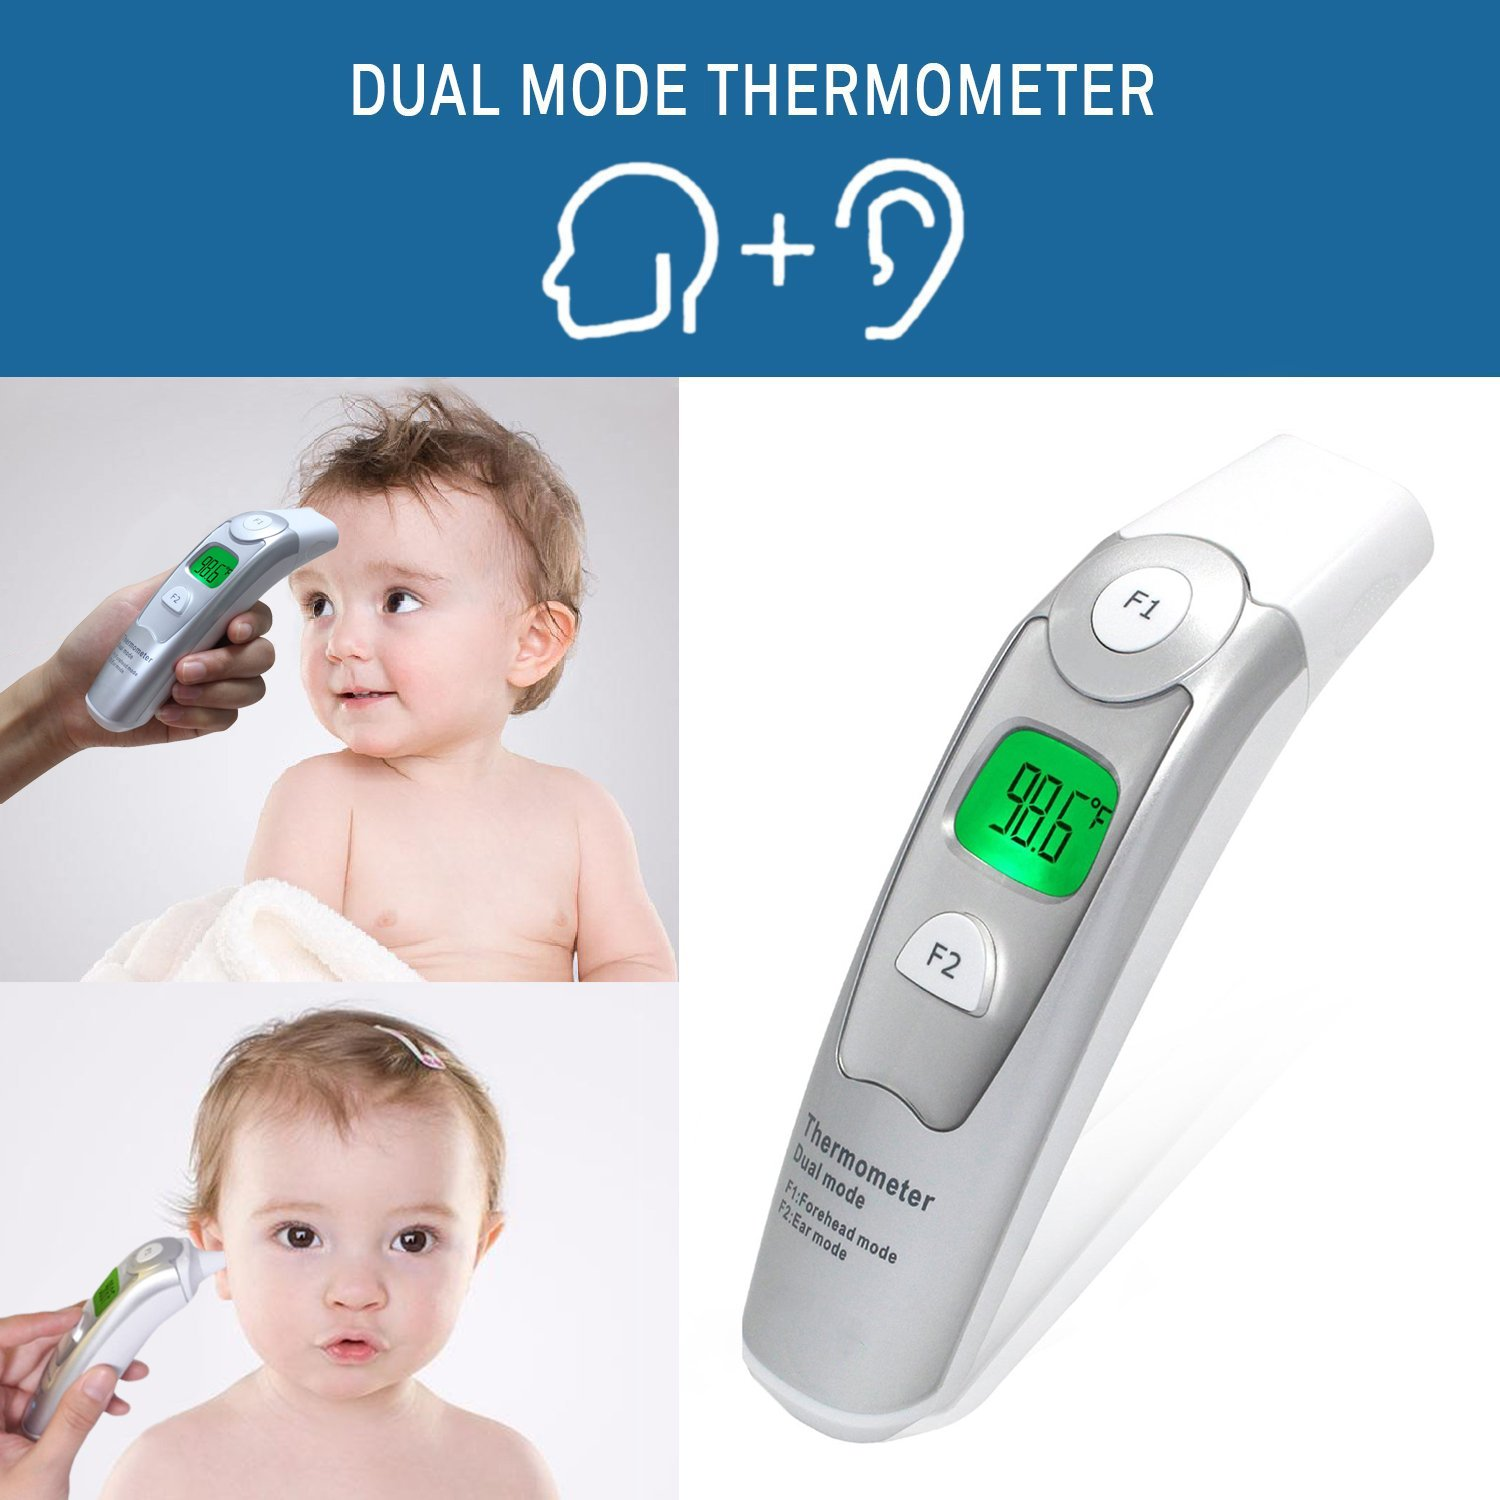 Best Baby Thermometer - Forehead and Ear Thermometer - FDA and CE Approved - 510k Certification - Adult and Child - Professional Medical Dual Mode - Fast and Accurate - Safe and Hygienic by TempIR (Image #2)